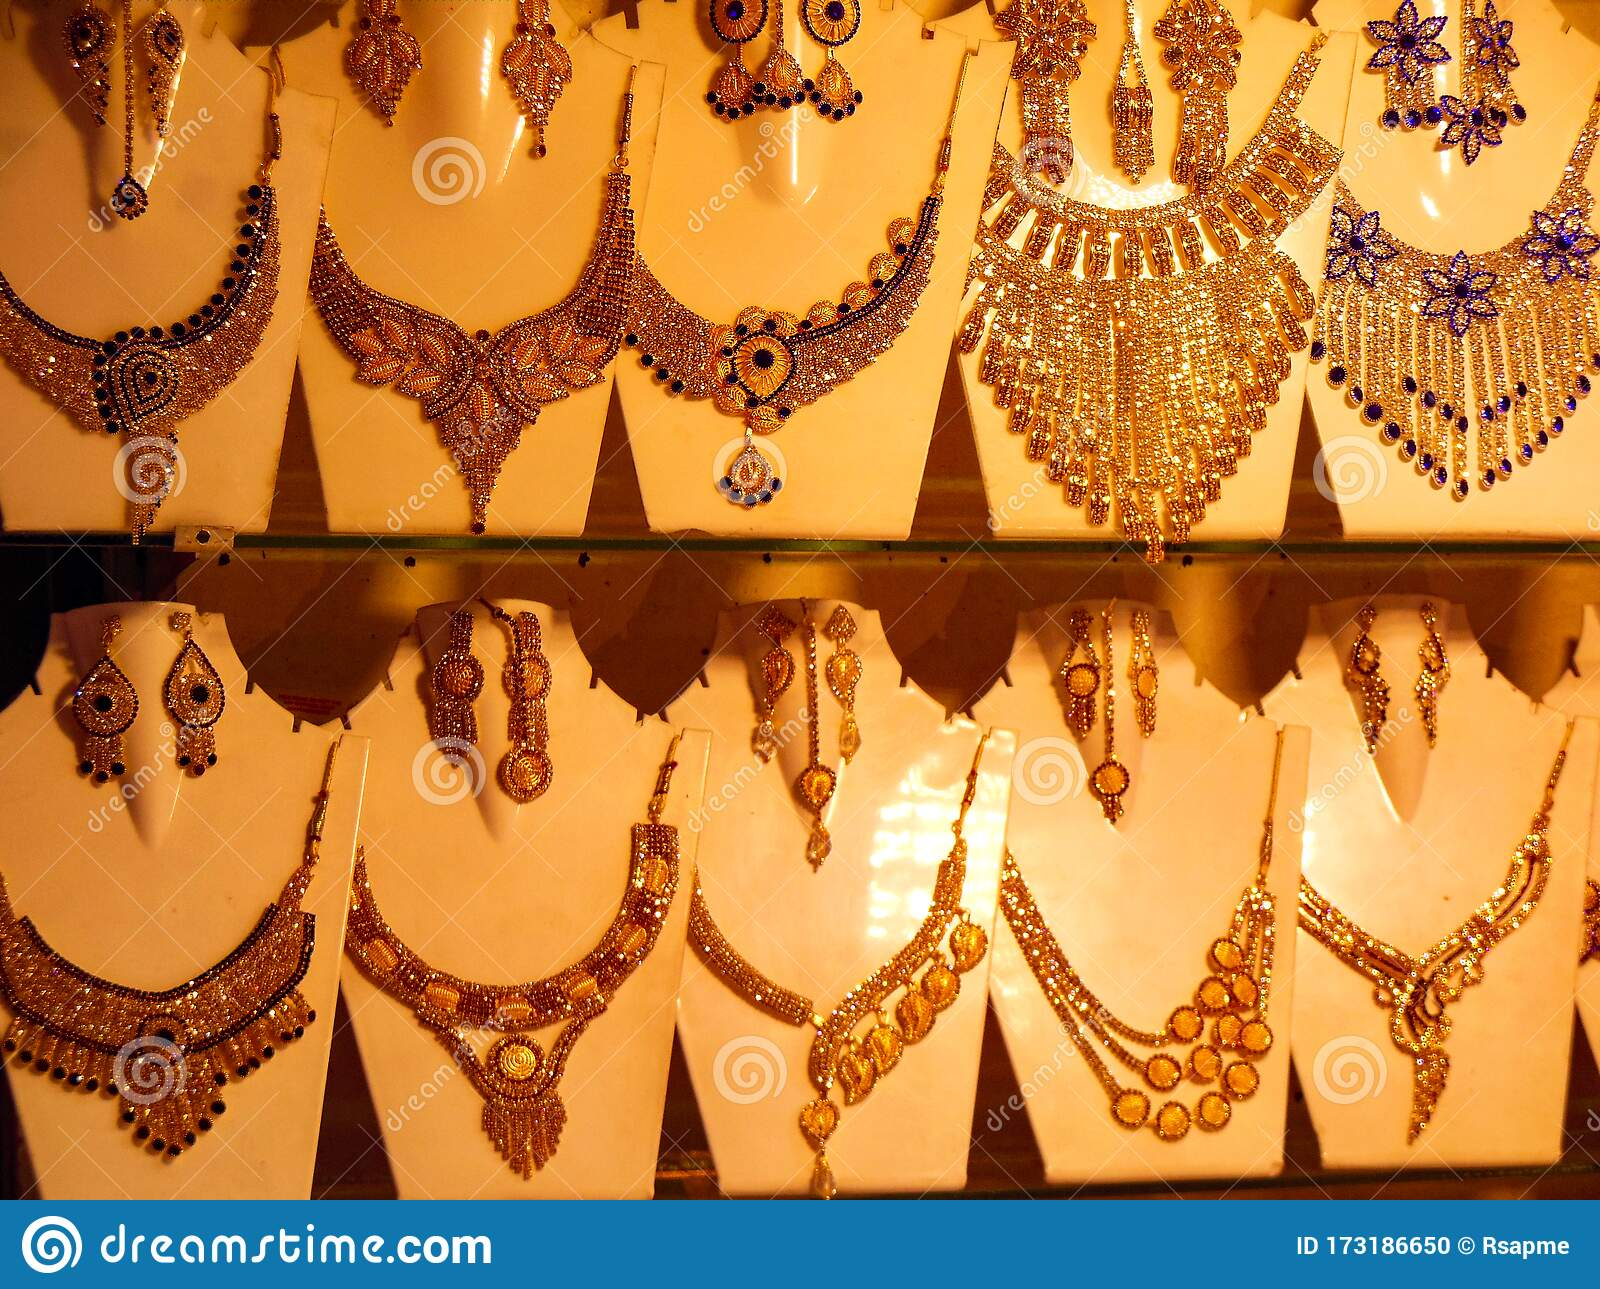 1 177 Artificial Jewellery Photos Free Royalty Free Stock Photos From Dreamstime